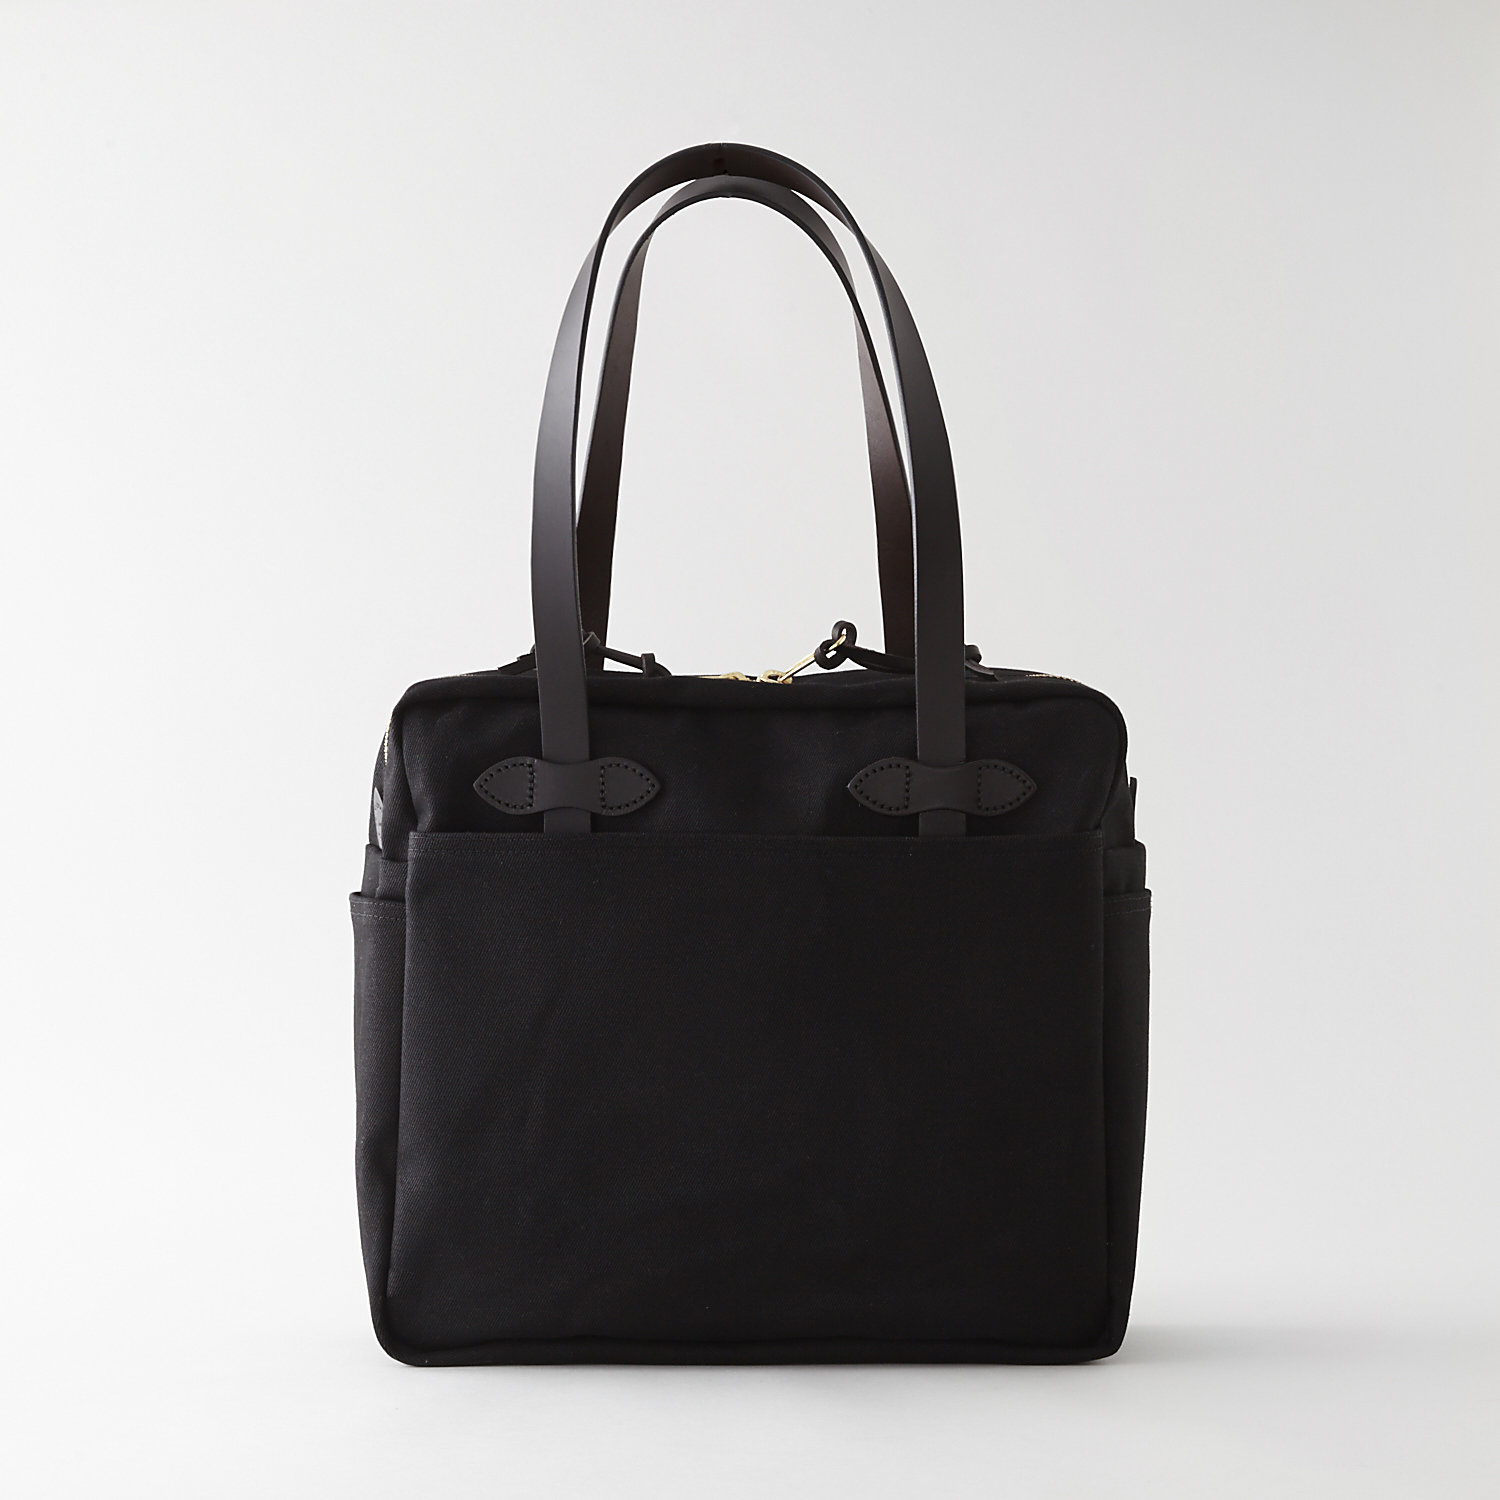 ZIPPERED TOTE BAG (EXCLUSIVE)